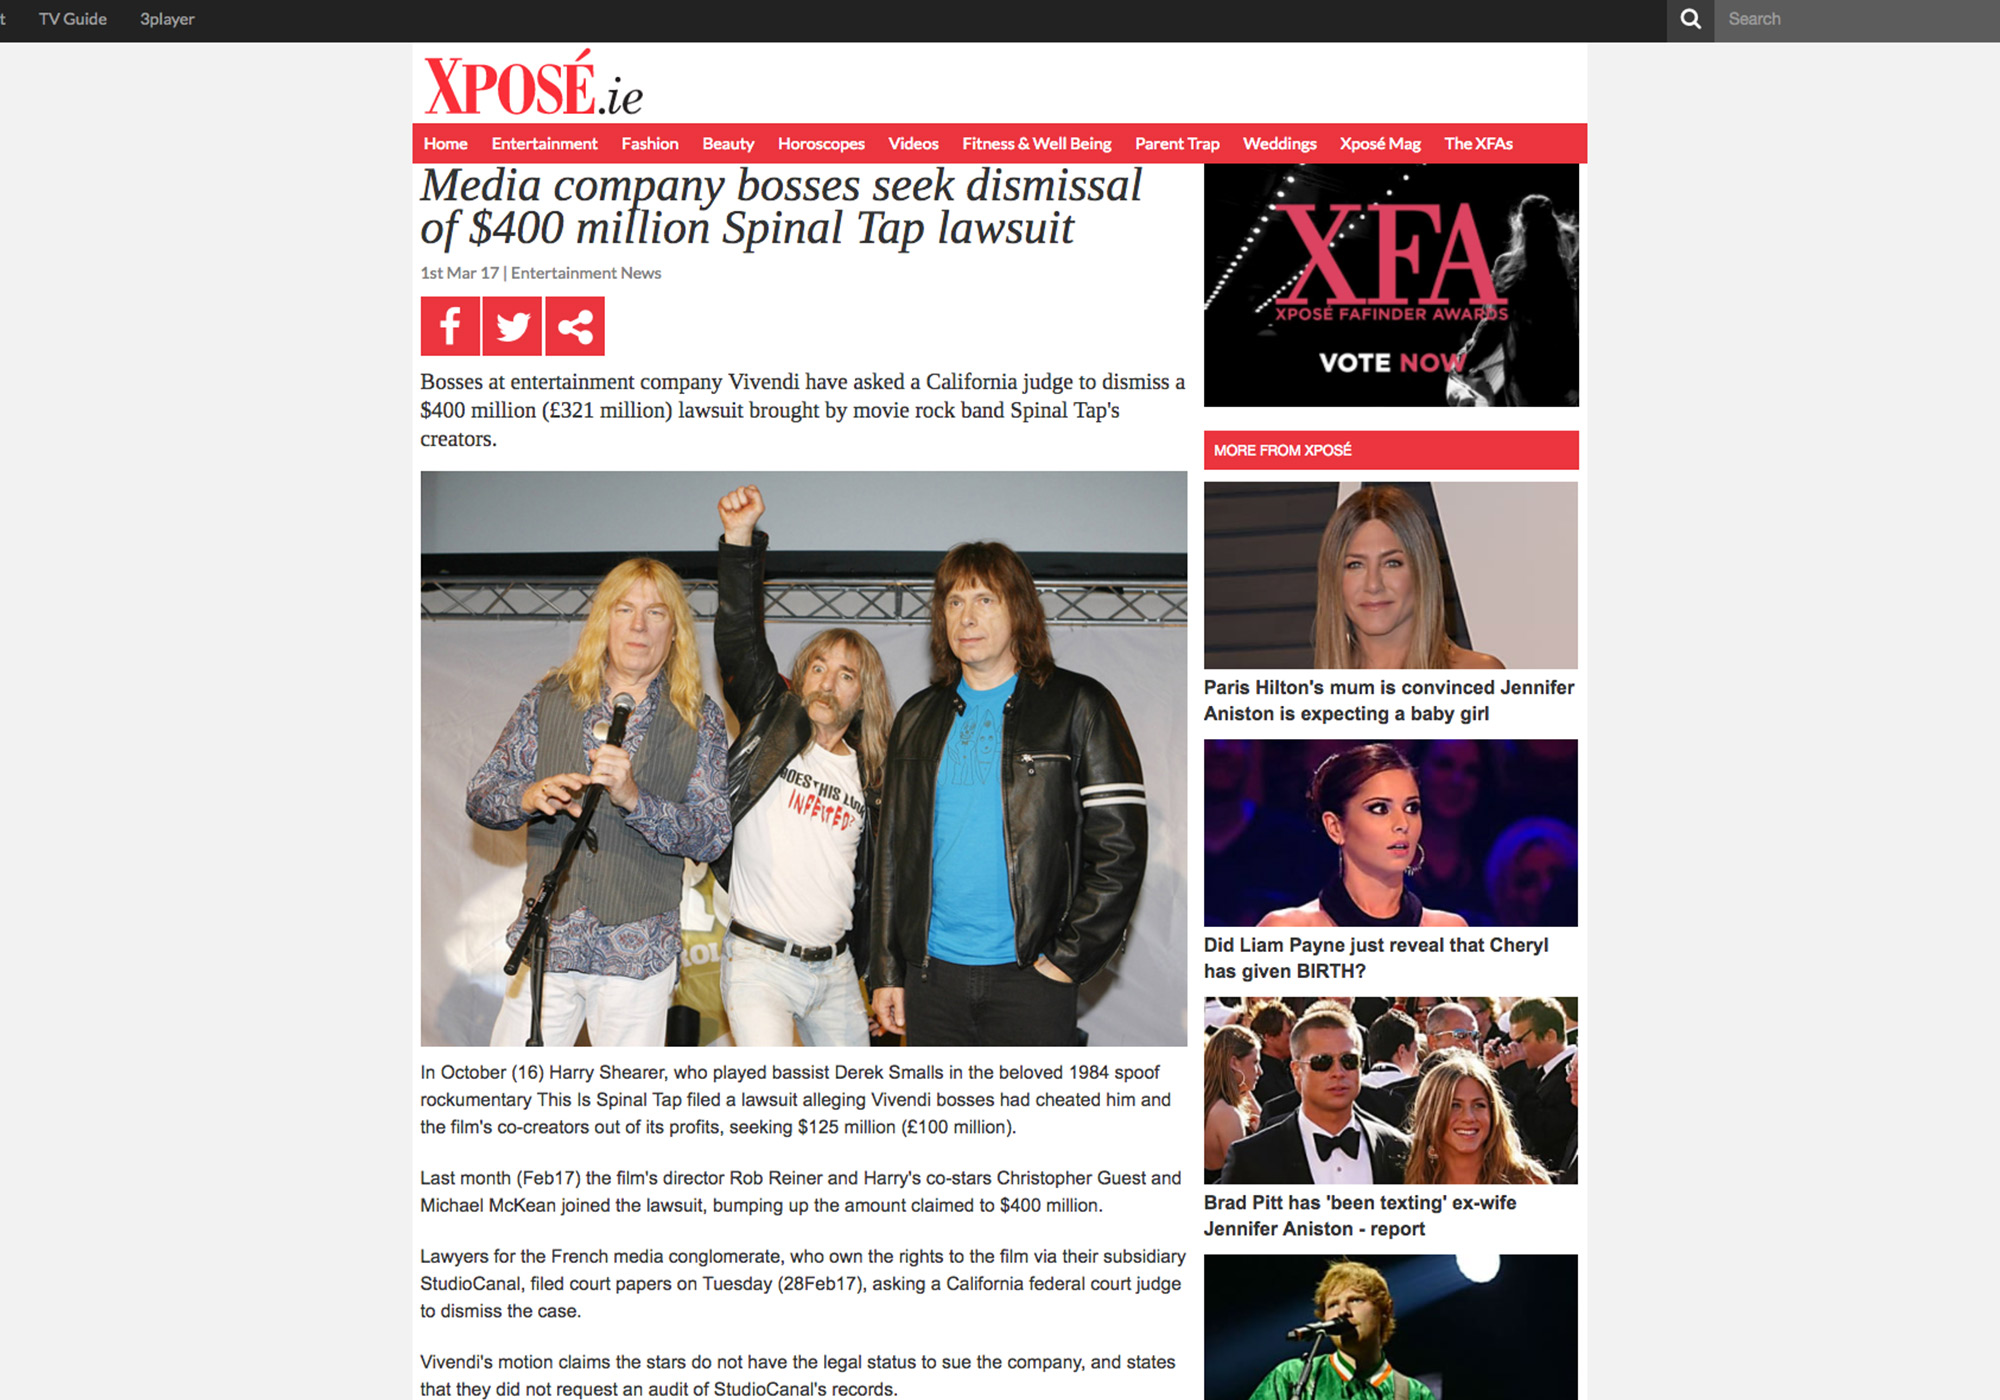 Fairness Rocks News Media company bosses seek dismissal of $400 million Spinal Tap lawsuit